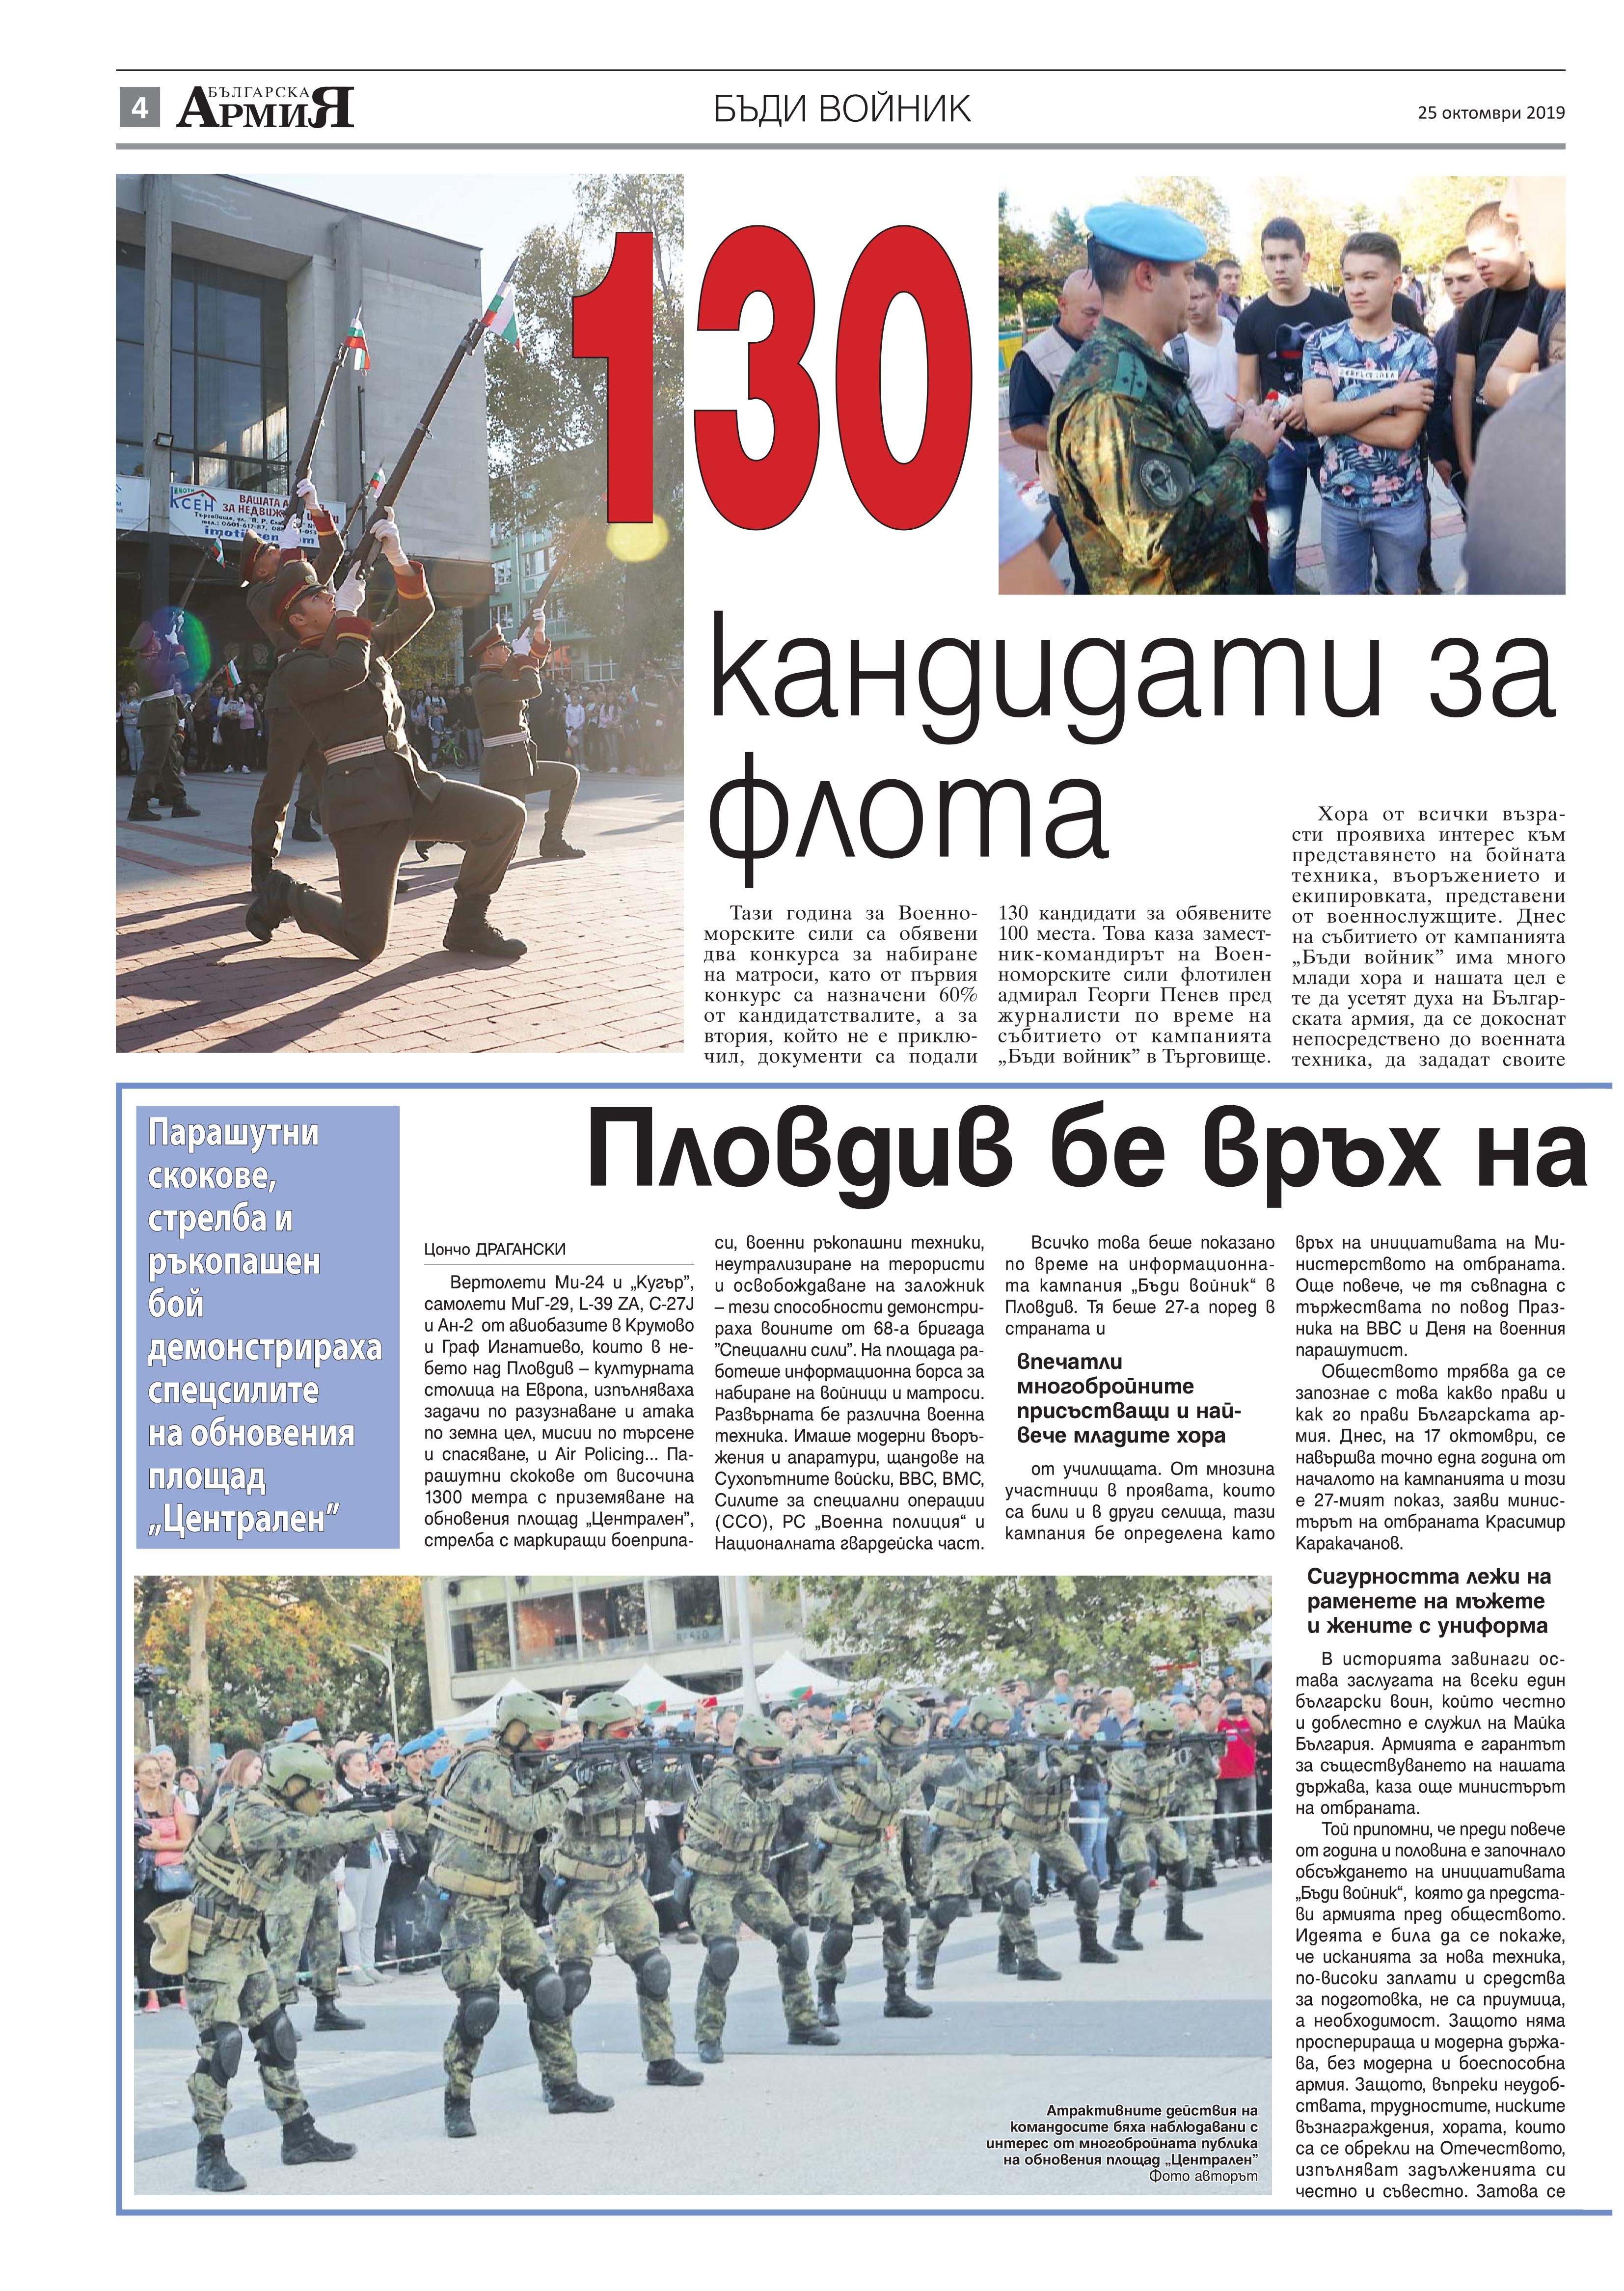 https://www.armymedia.bg/wp-content/uploads/2015/06/04.page1_-110.jpg